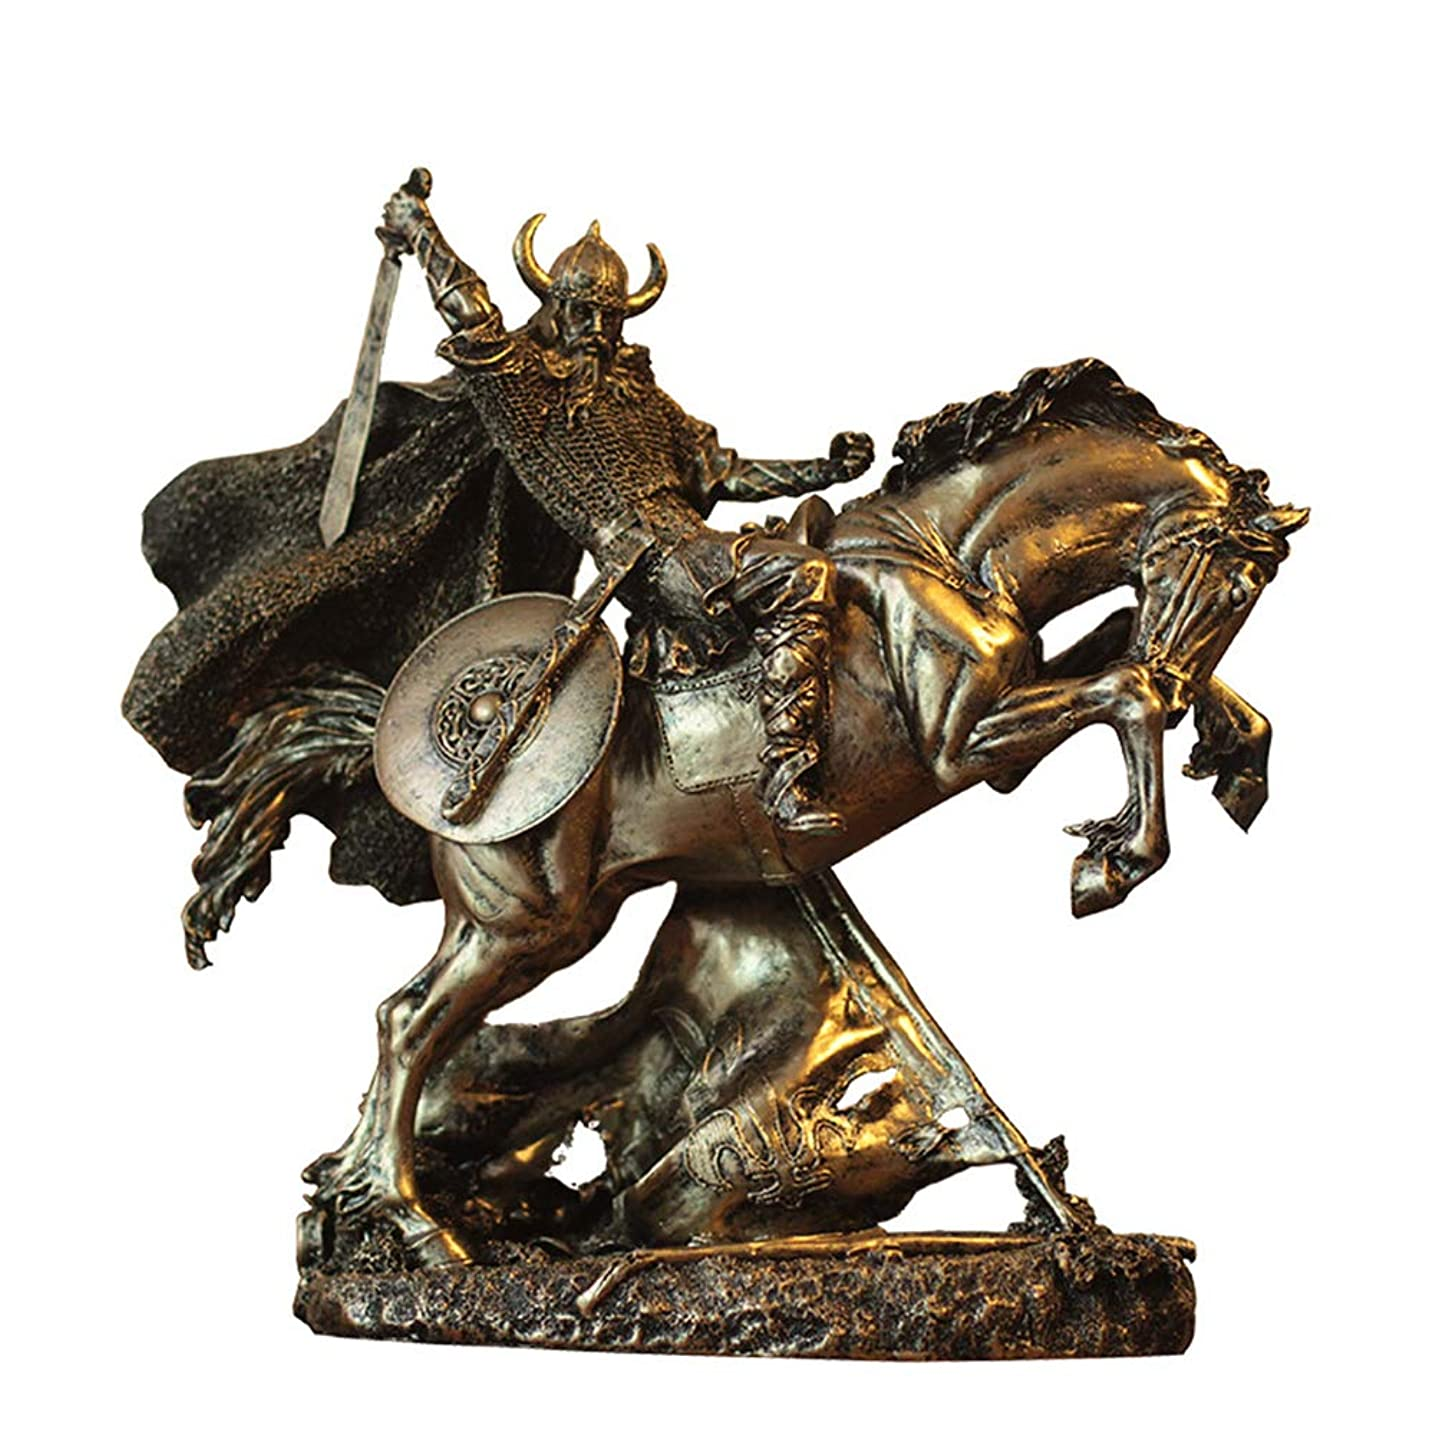 SDBRKYH Roman Warrior Statue, Ancient Roman Warrior Statue Greek Warrior Statue Desktop Decorations Desk Decoration